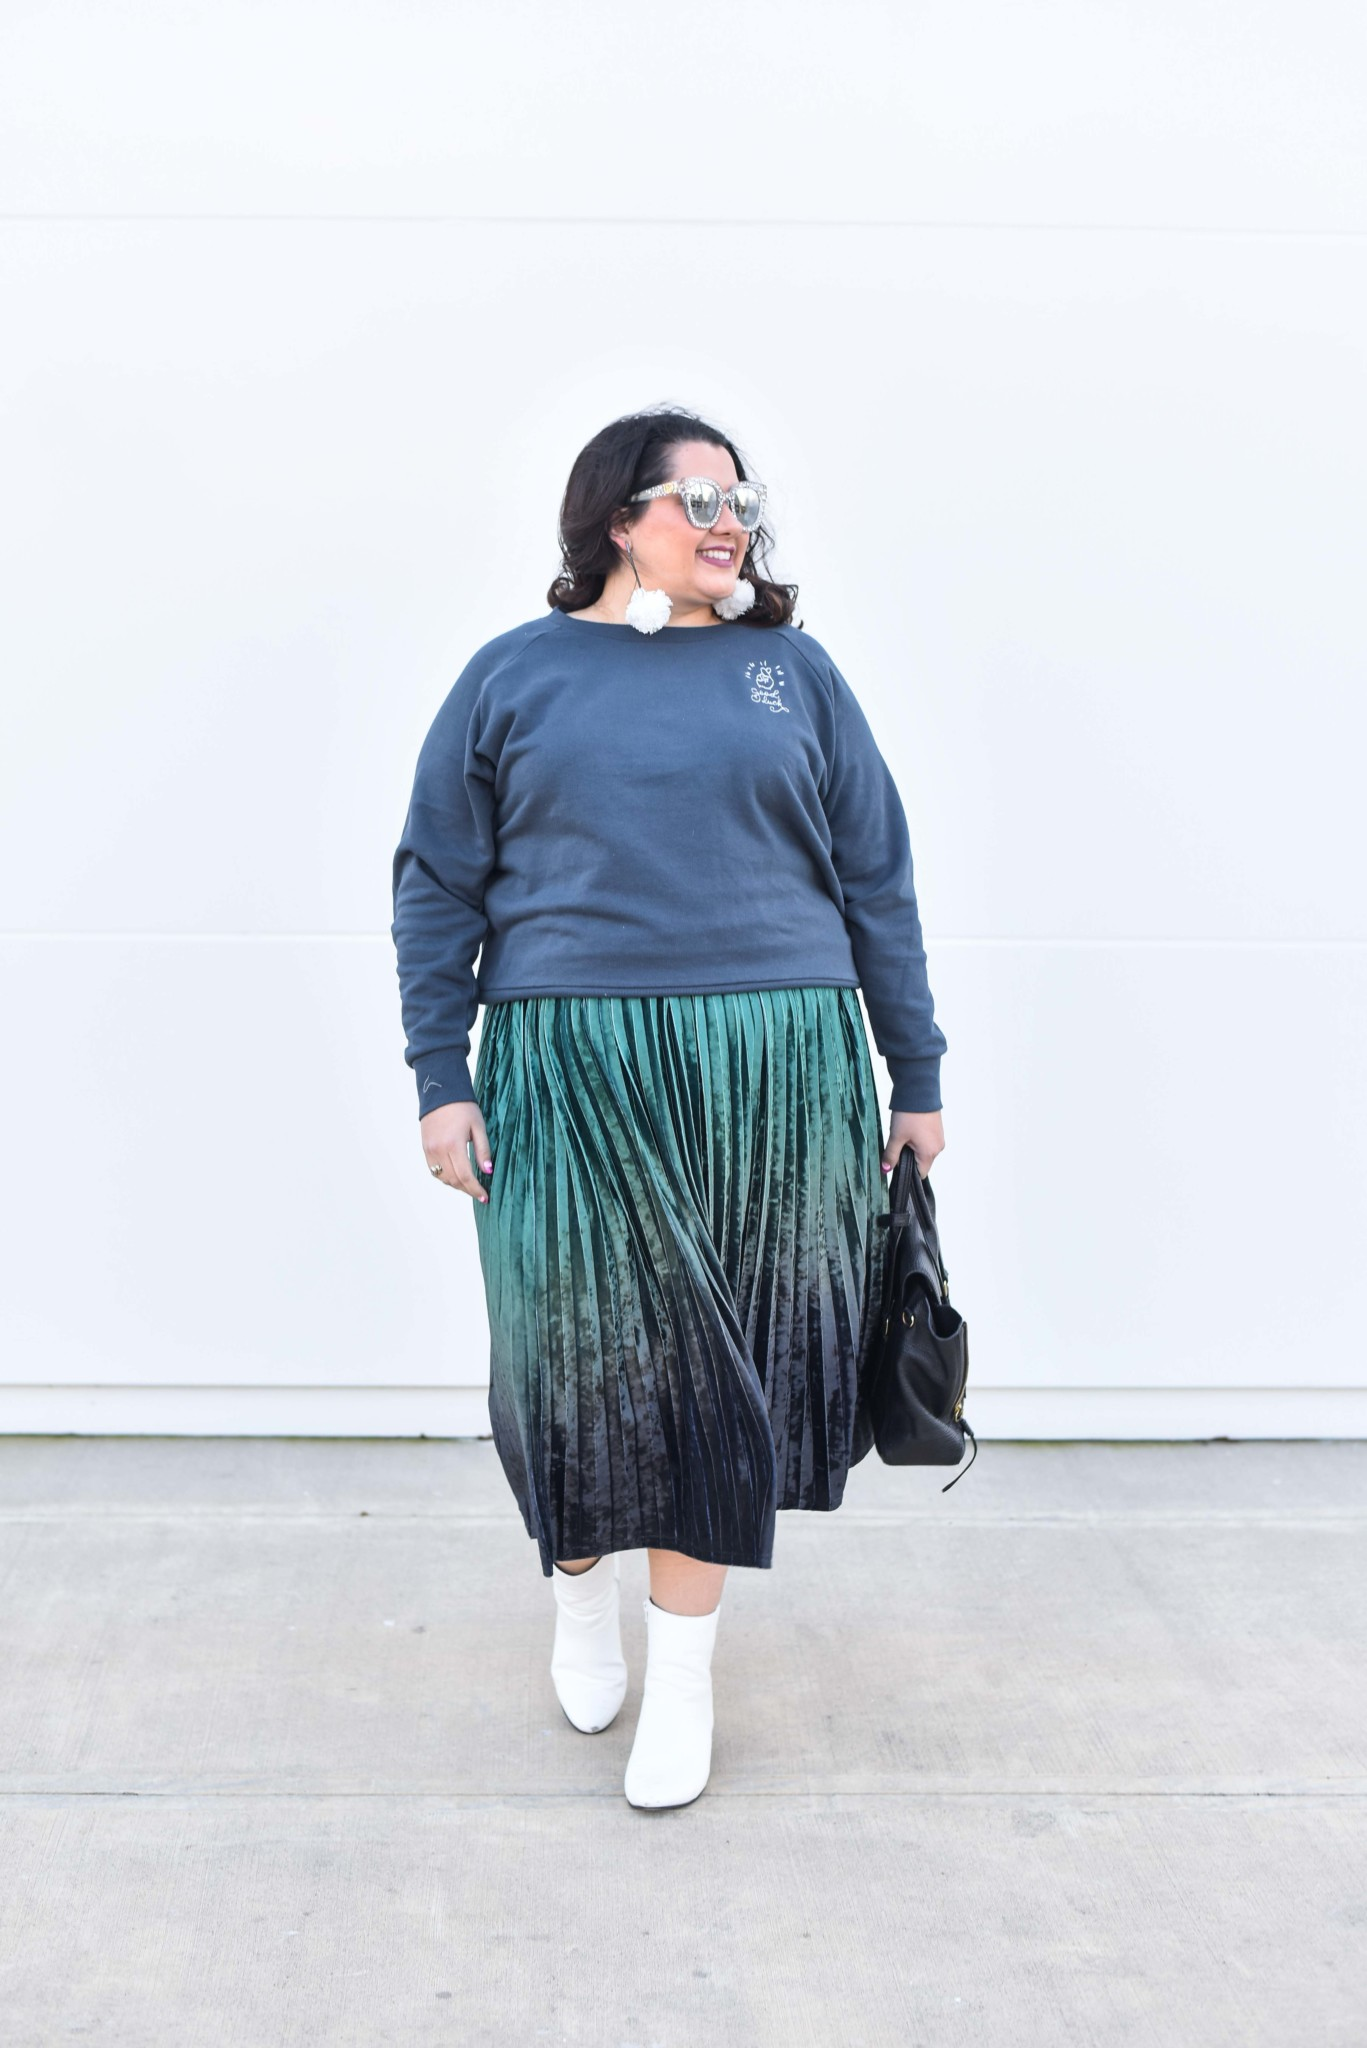 Plus size women can now look chic and be extremely comfortable thanks to Ori's new collection. #plussizestyle